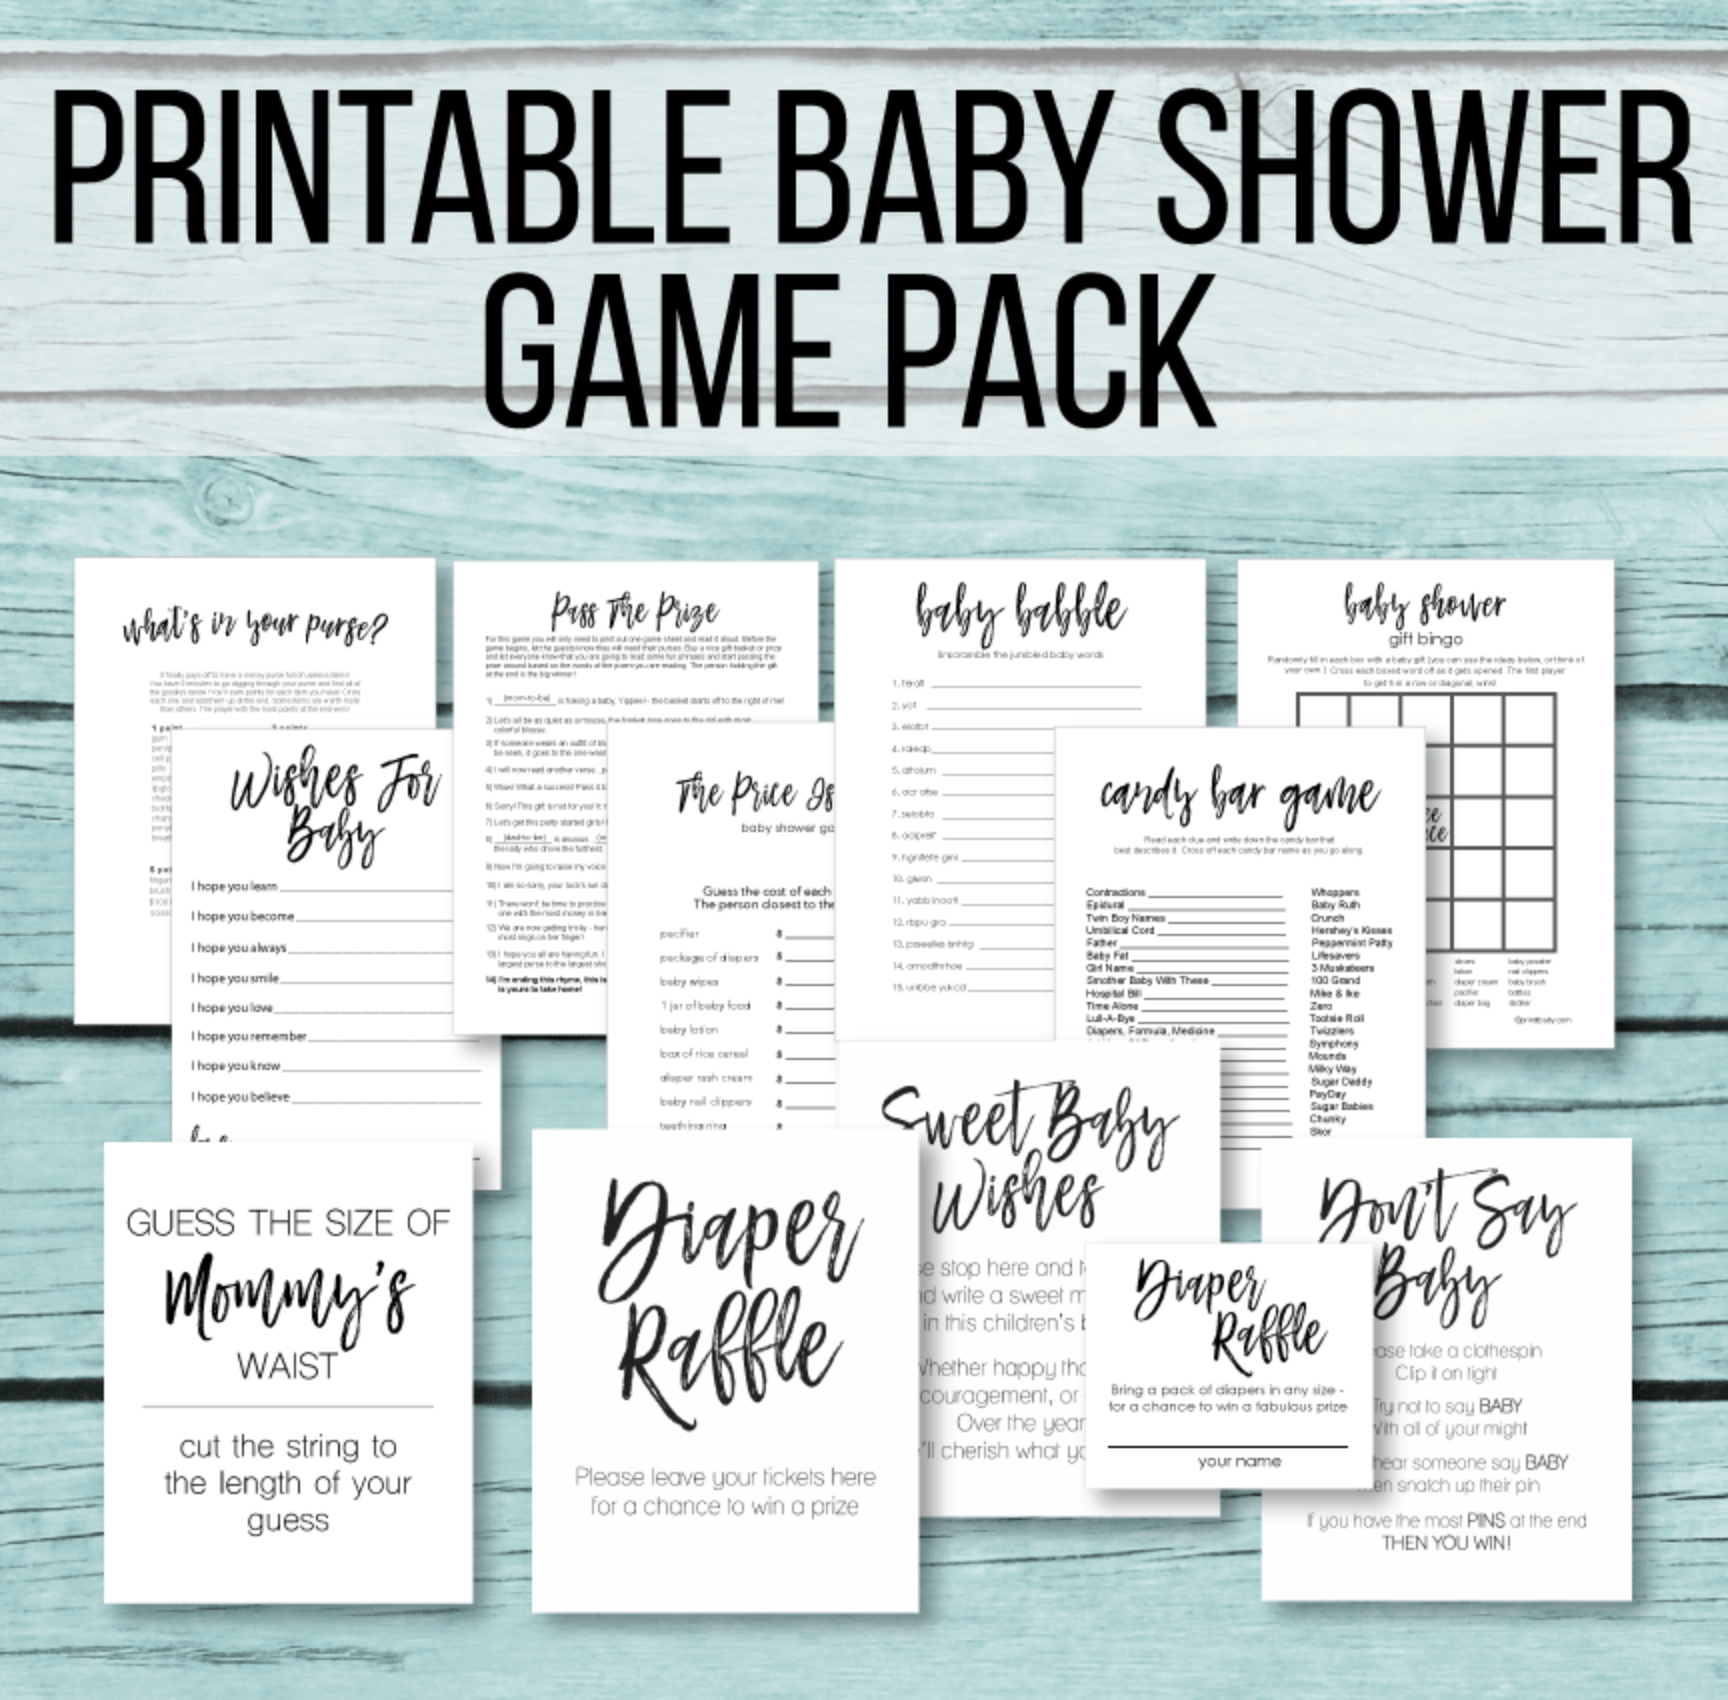 11 Printable Baby Shower Games - Game Pack - PAY WHAT YOU WANT